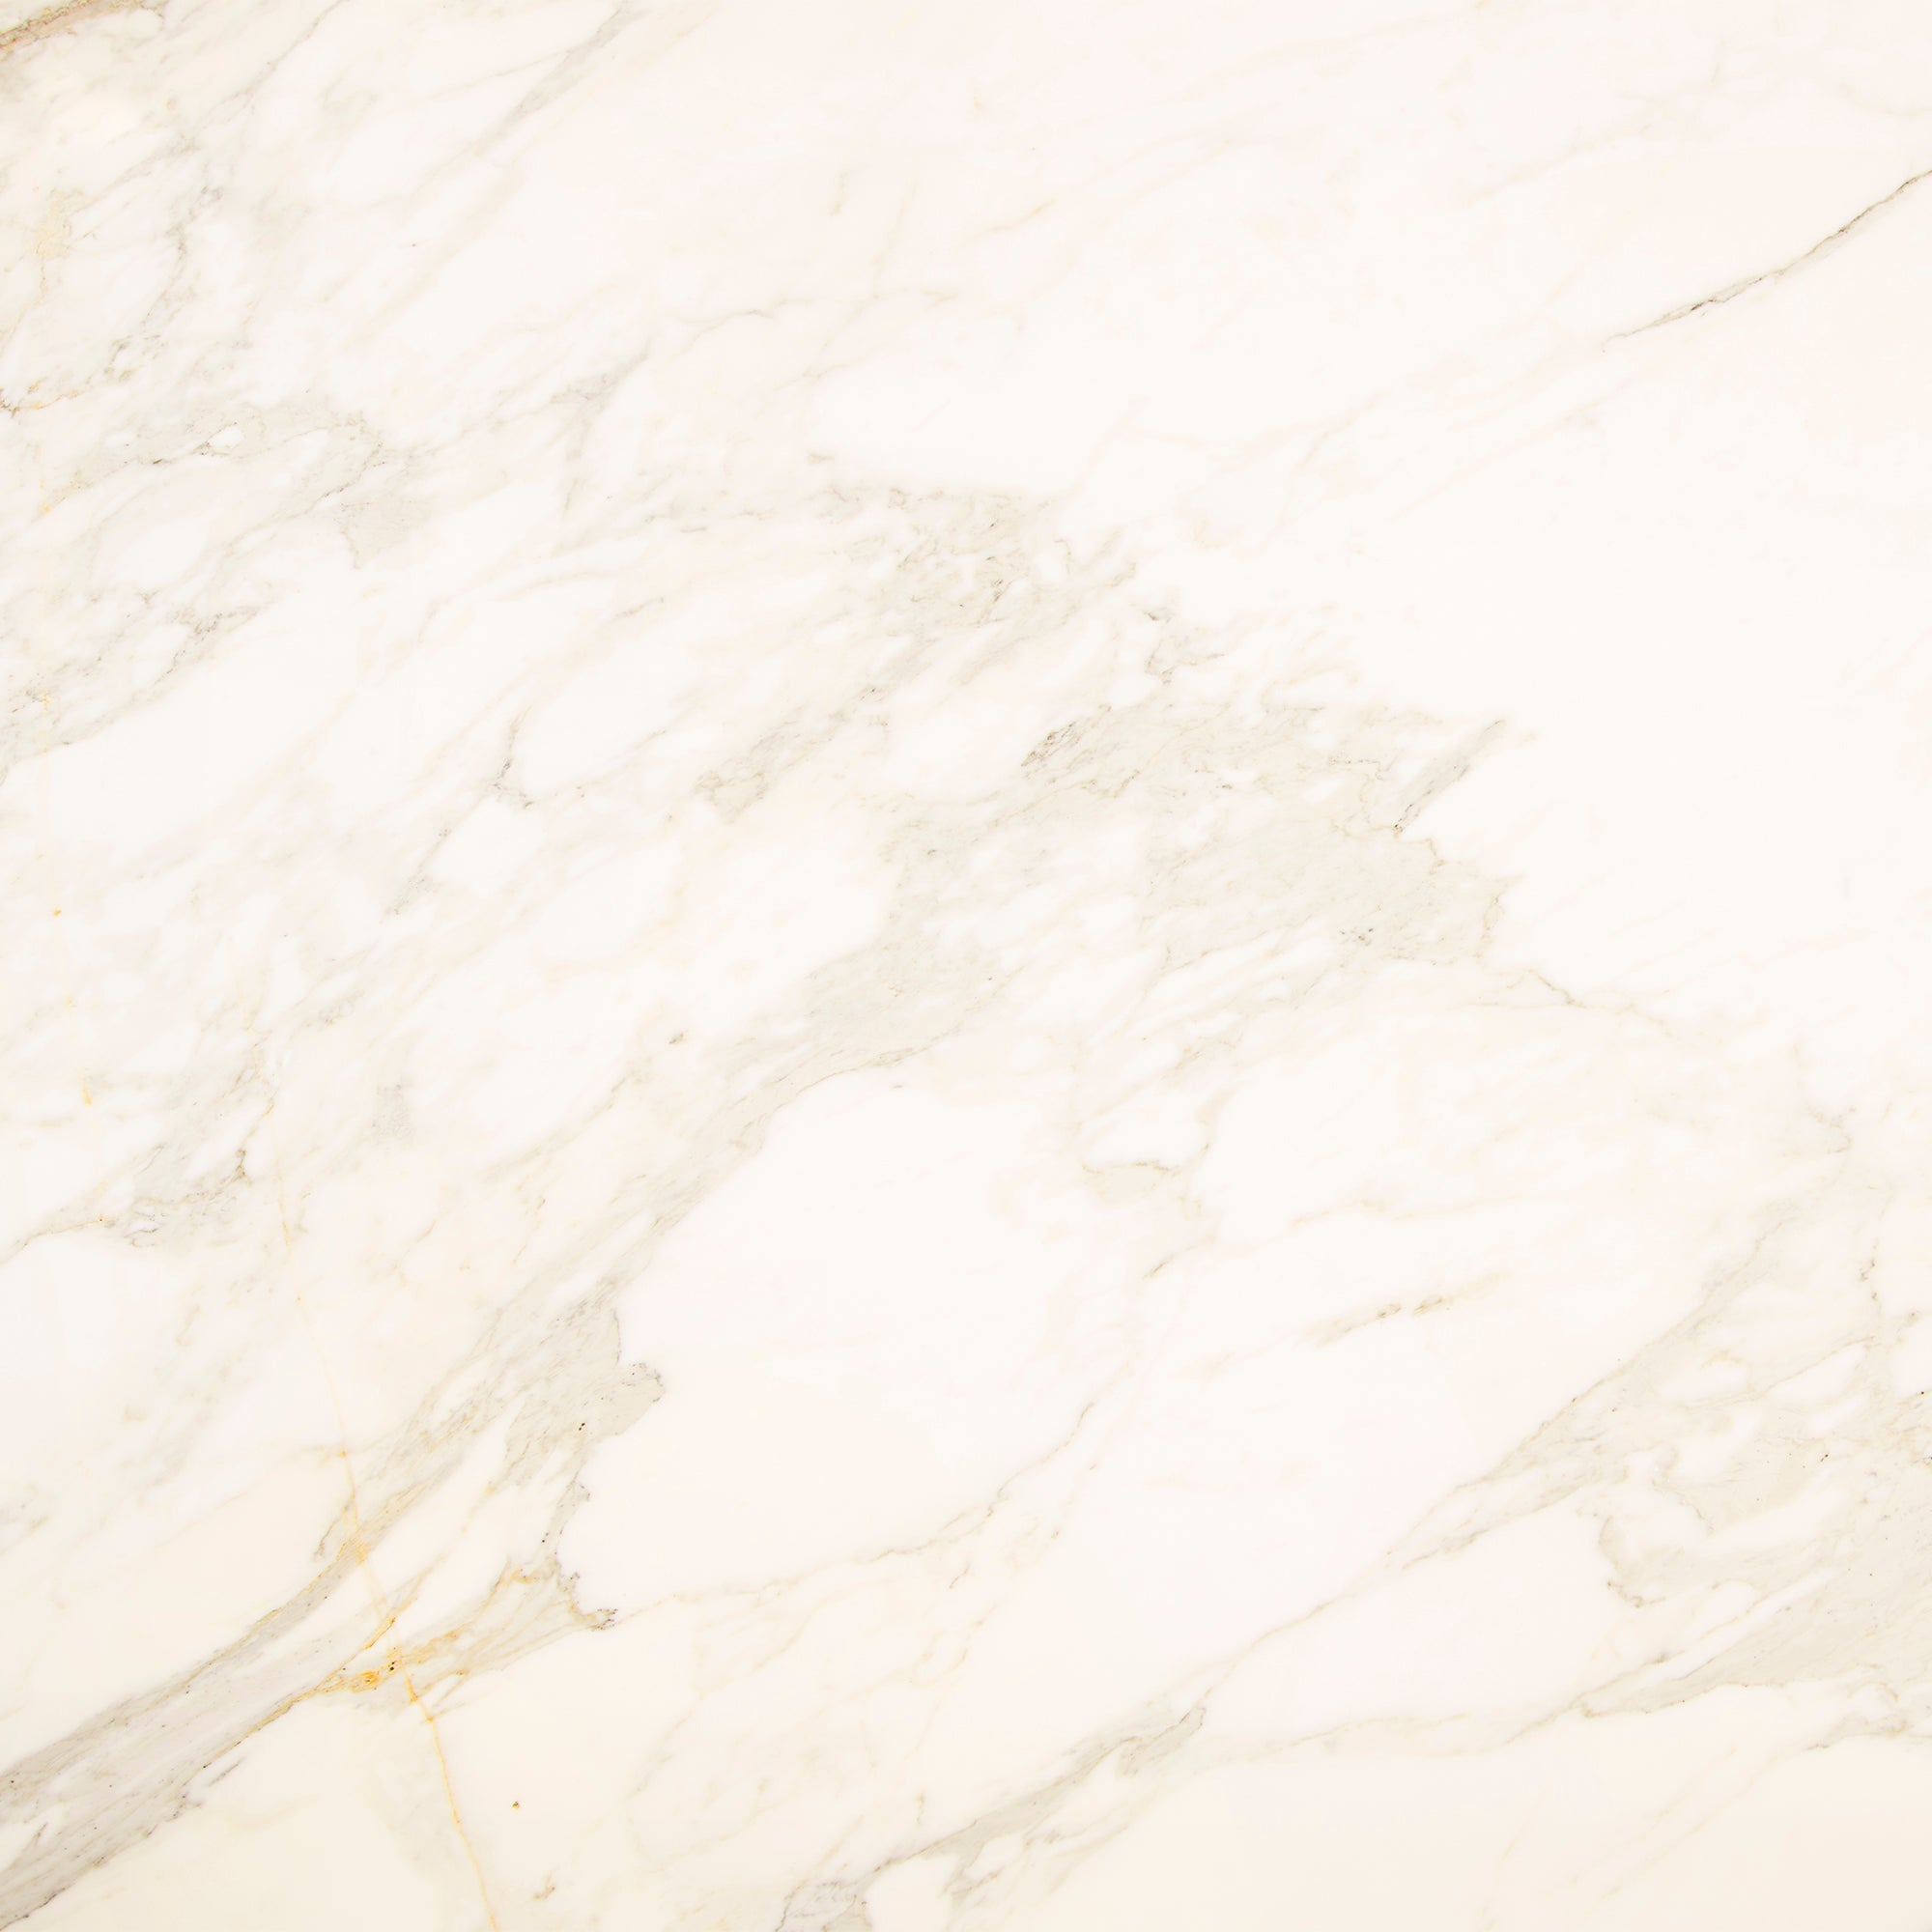 2cm Calacatta Gold Apuano Marble Swatch Card  Polished Samples Slab product photo